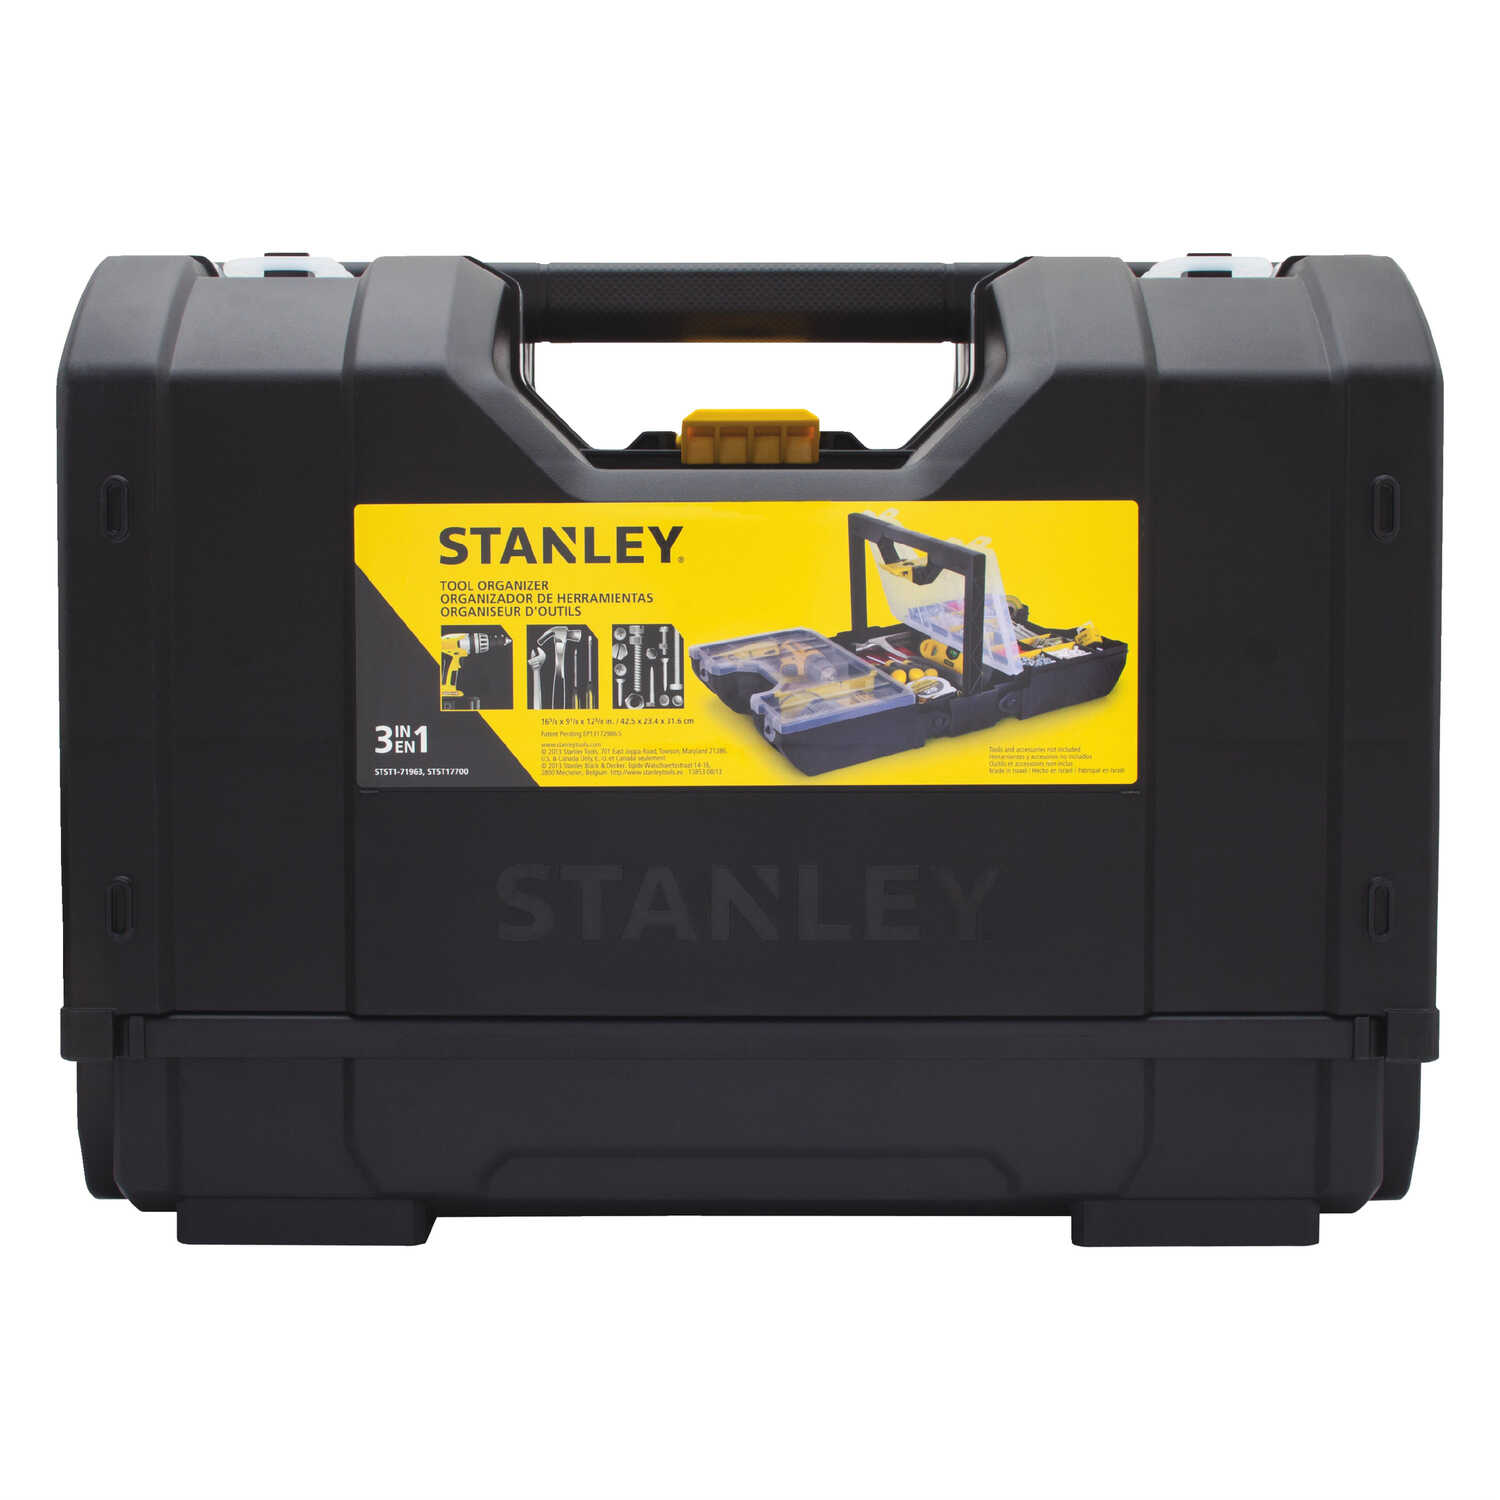 Stanley  16 in. Plastic  Tool Box Organizer  9 in. W x 12 in. H Black